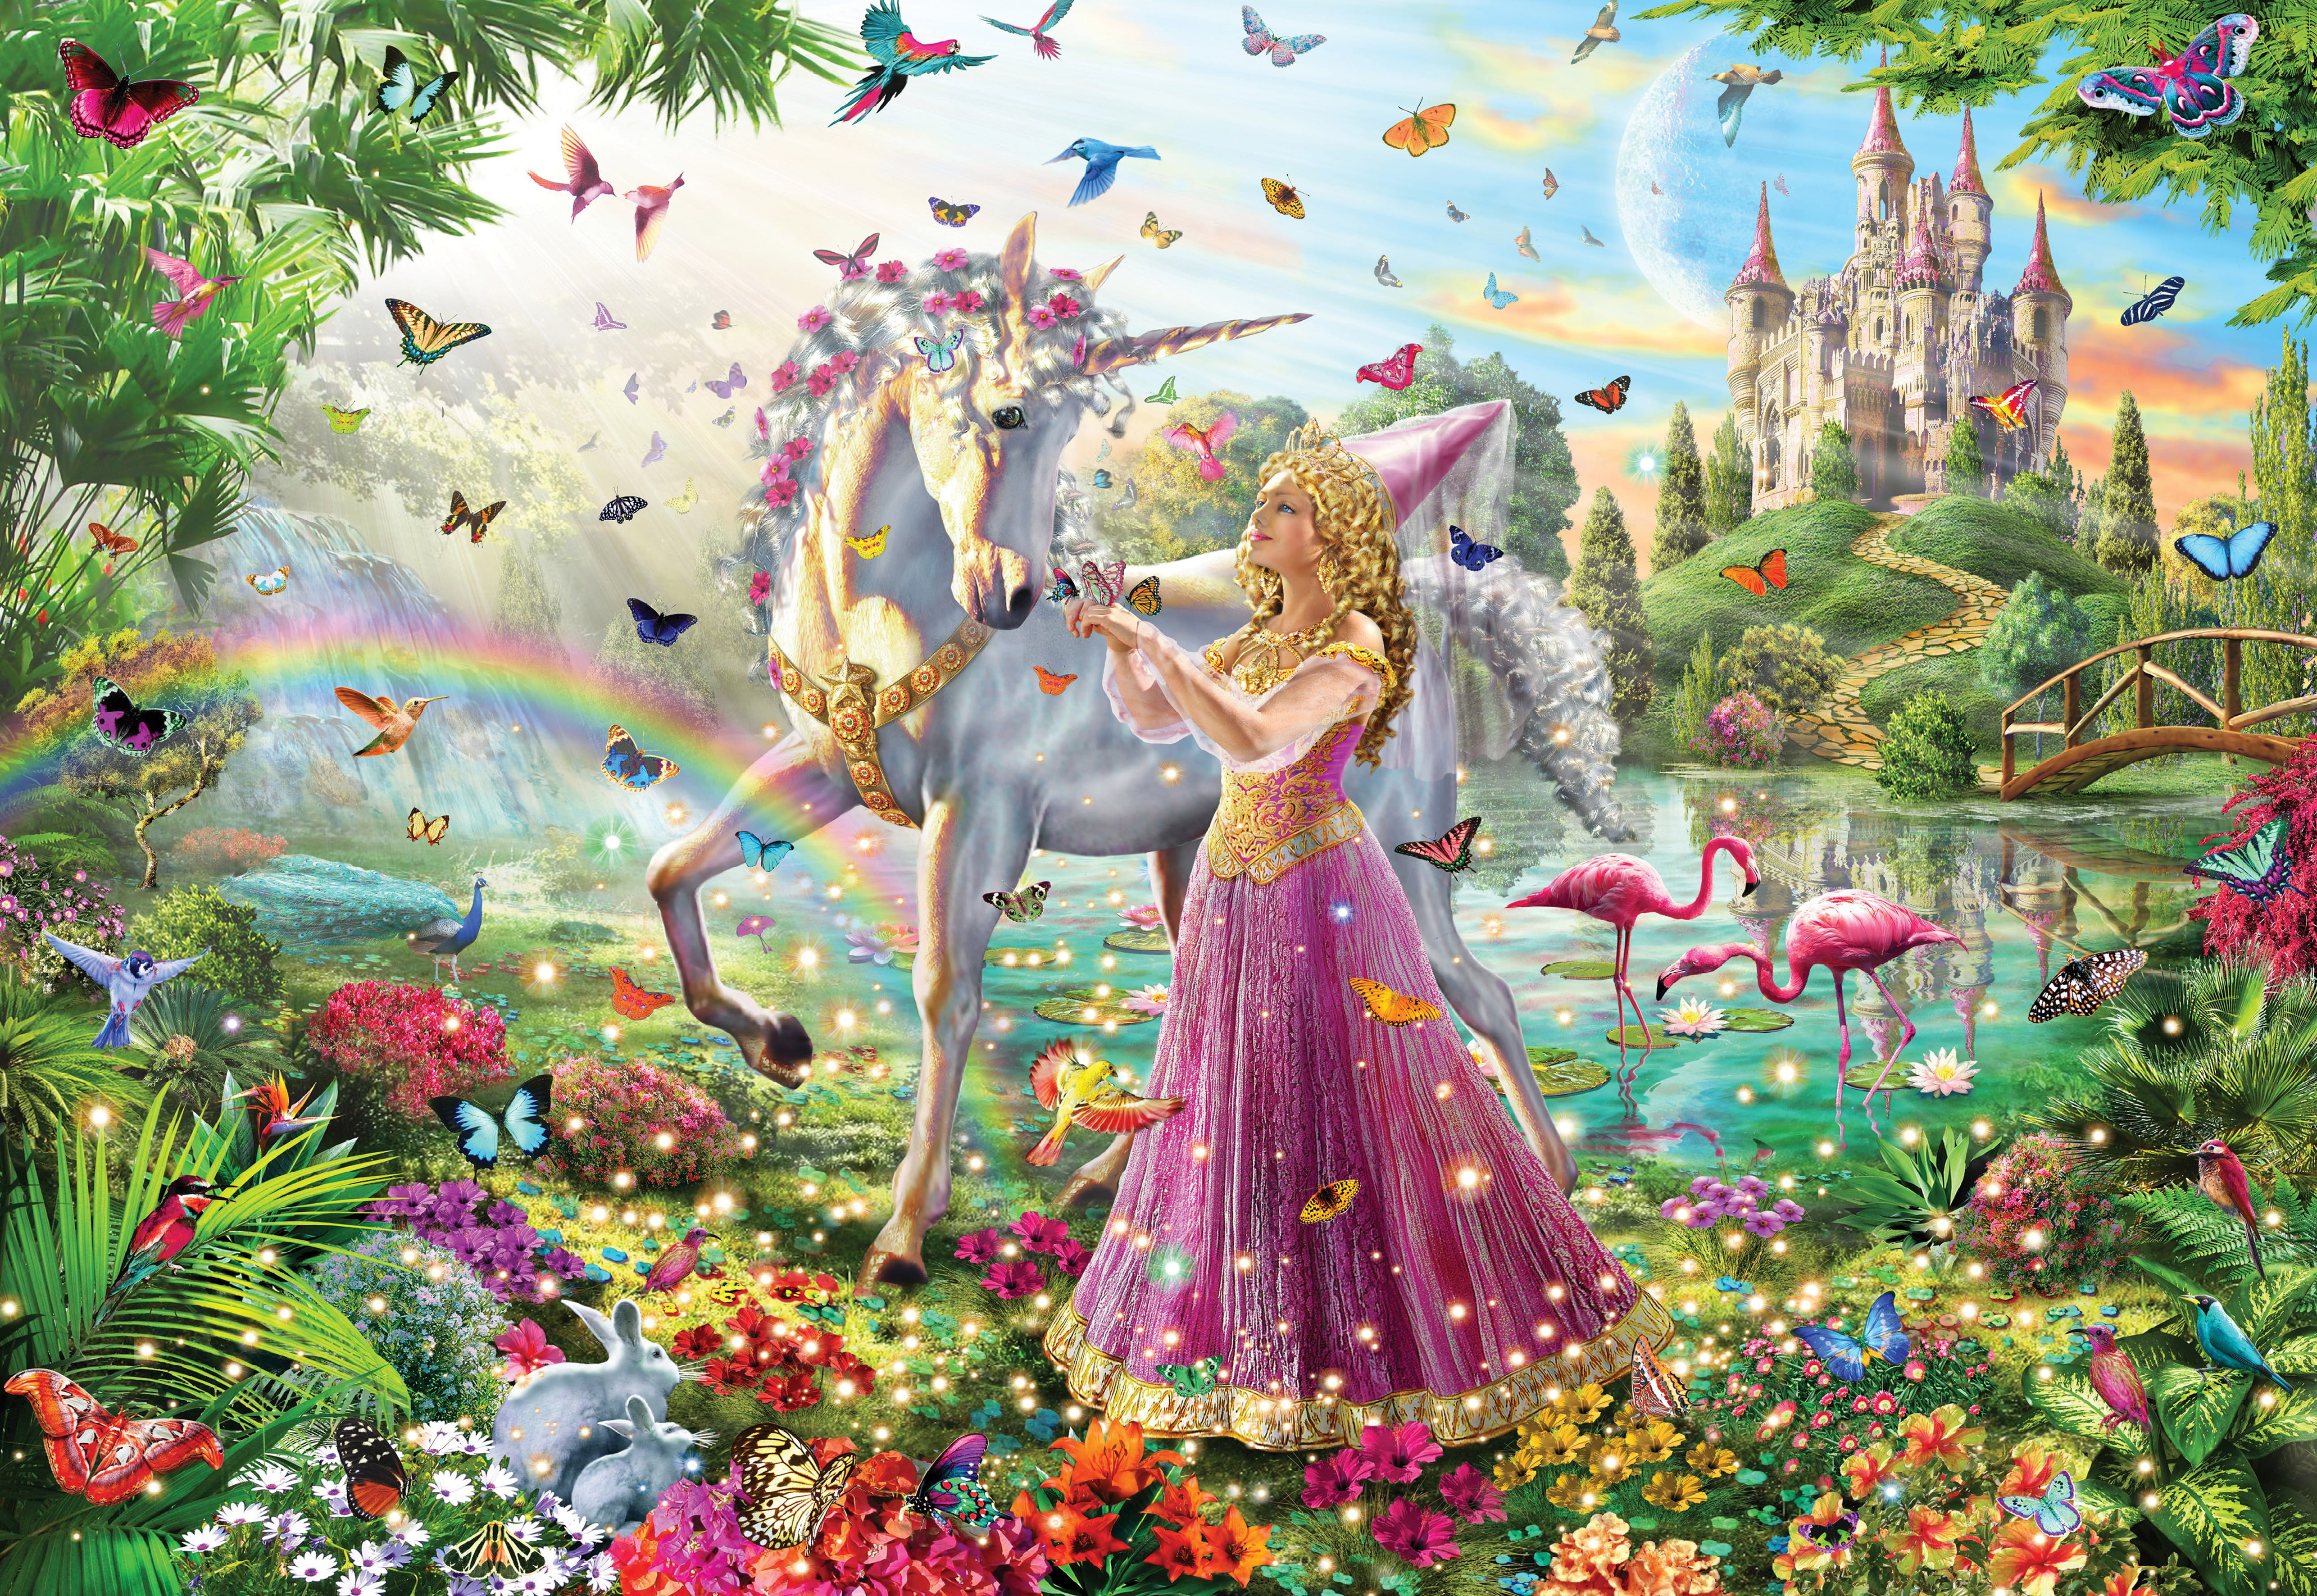 Gallery Princess Unicorn 300pc Jigsaw Puzzle on Number 10 Puzzle